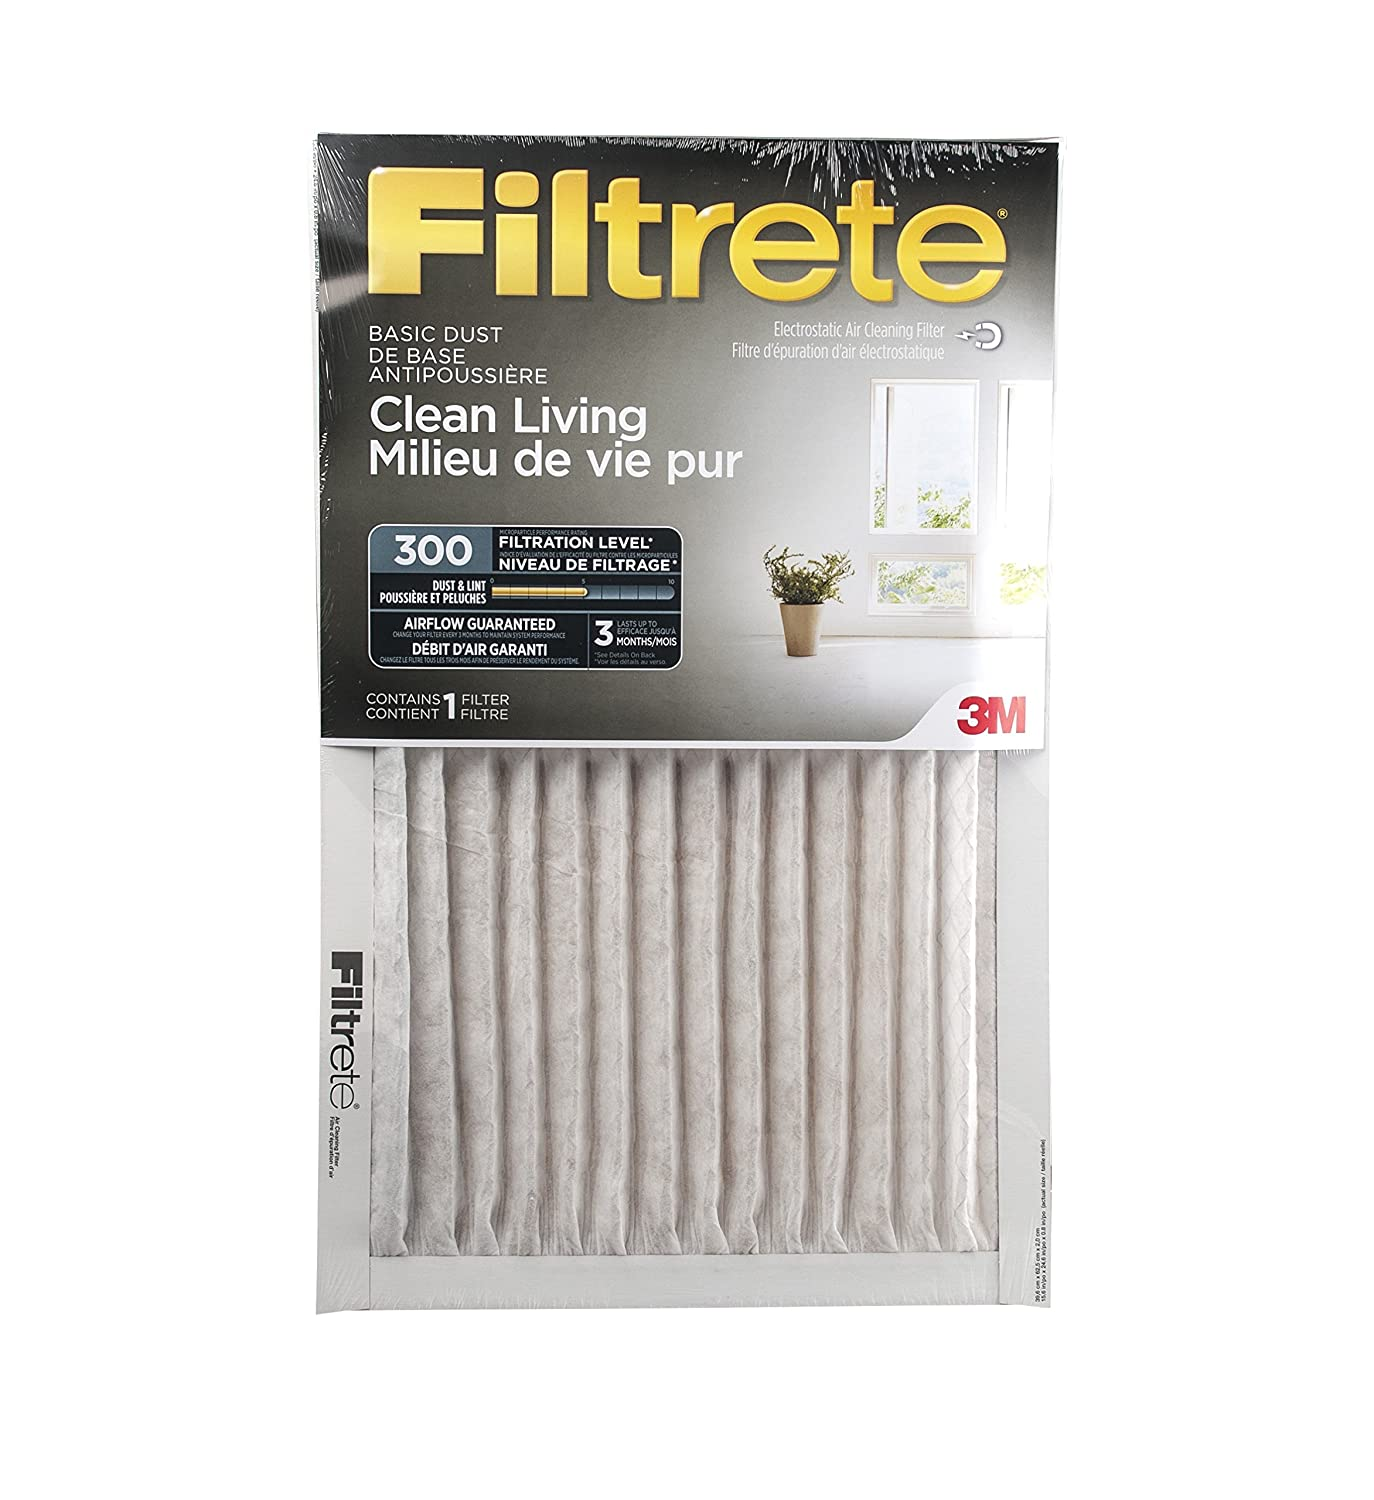 Filtrete 16x25x1 Amazon Canada Filtrete 6 Pack Furnace Filters Various